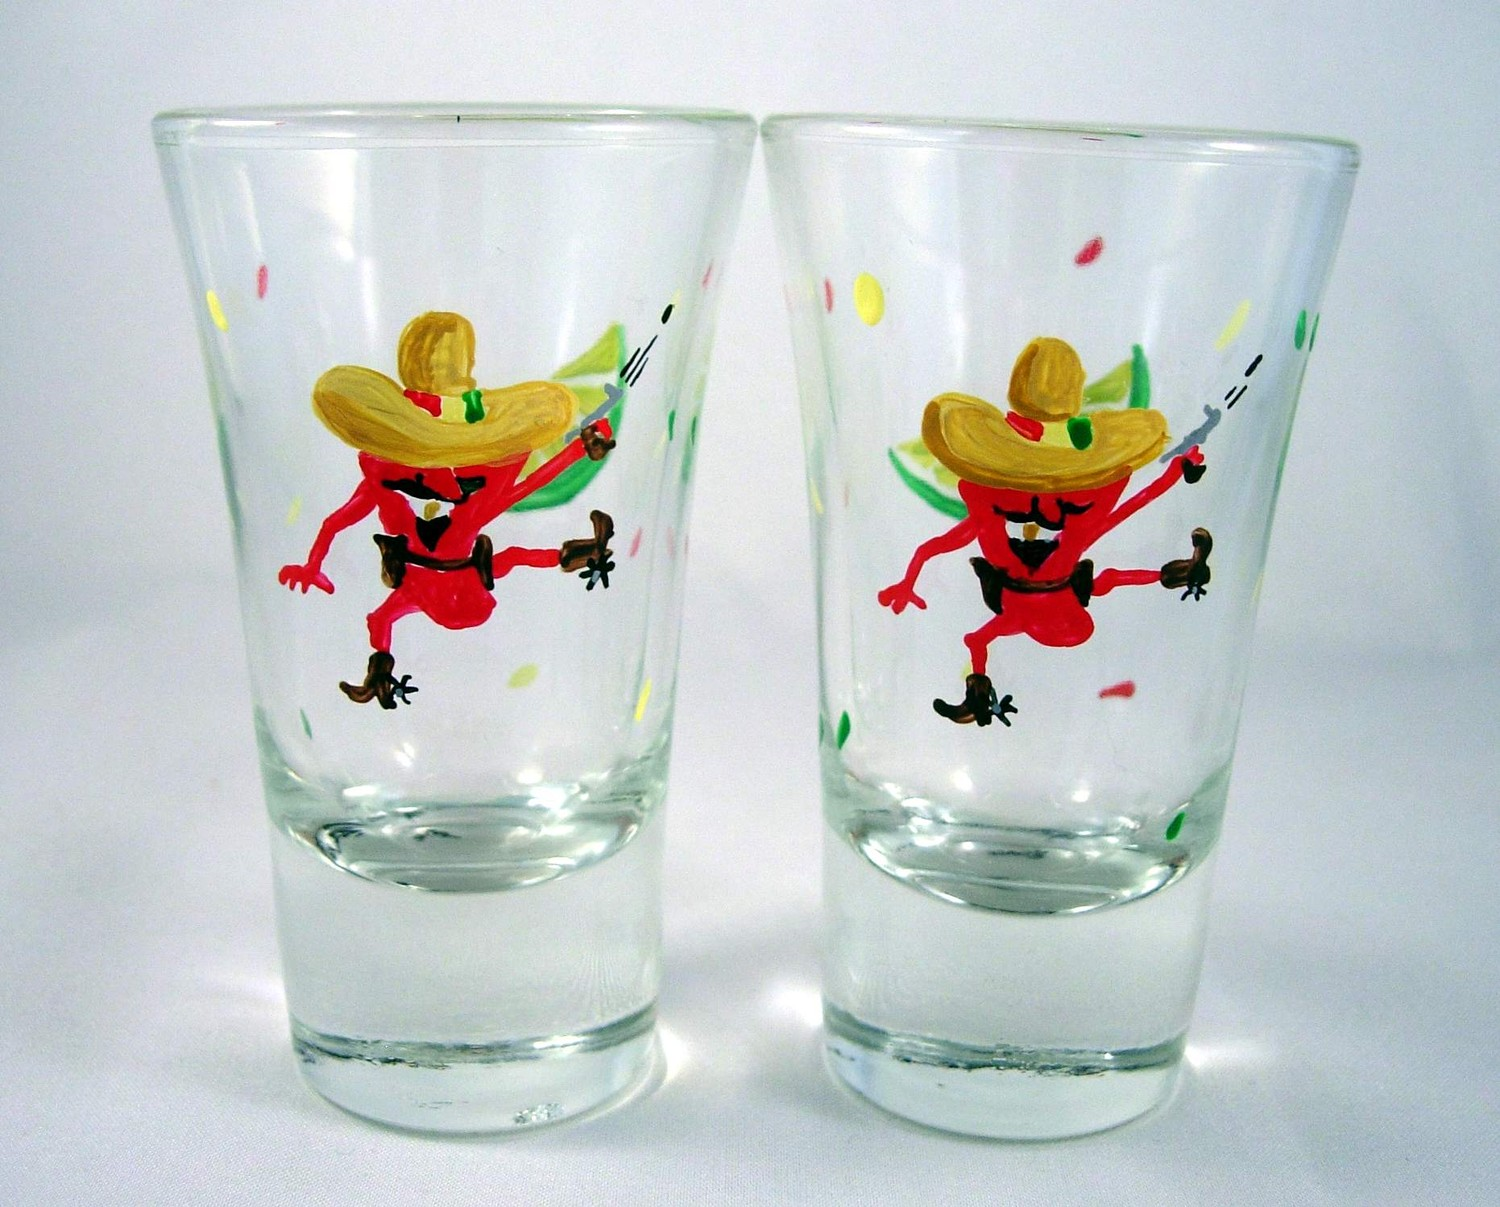 CHILI PEPPER GLASS